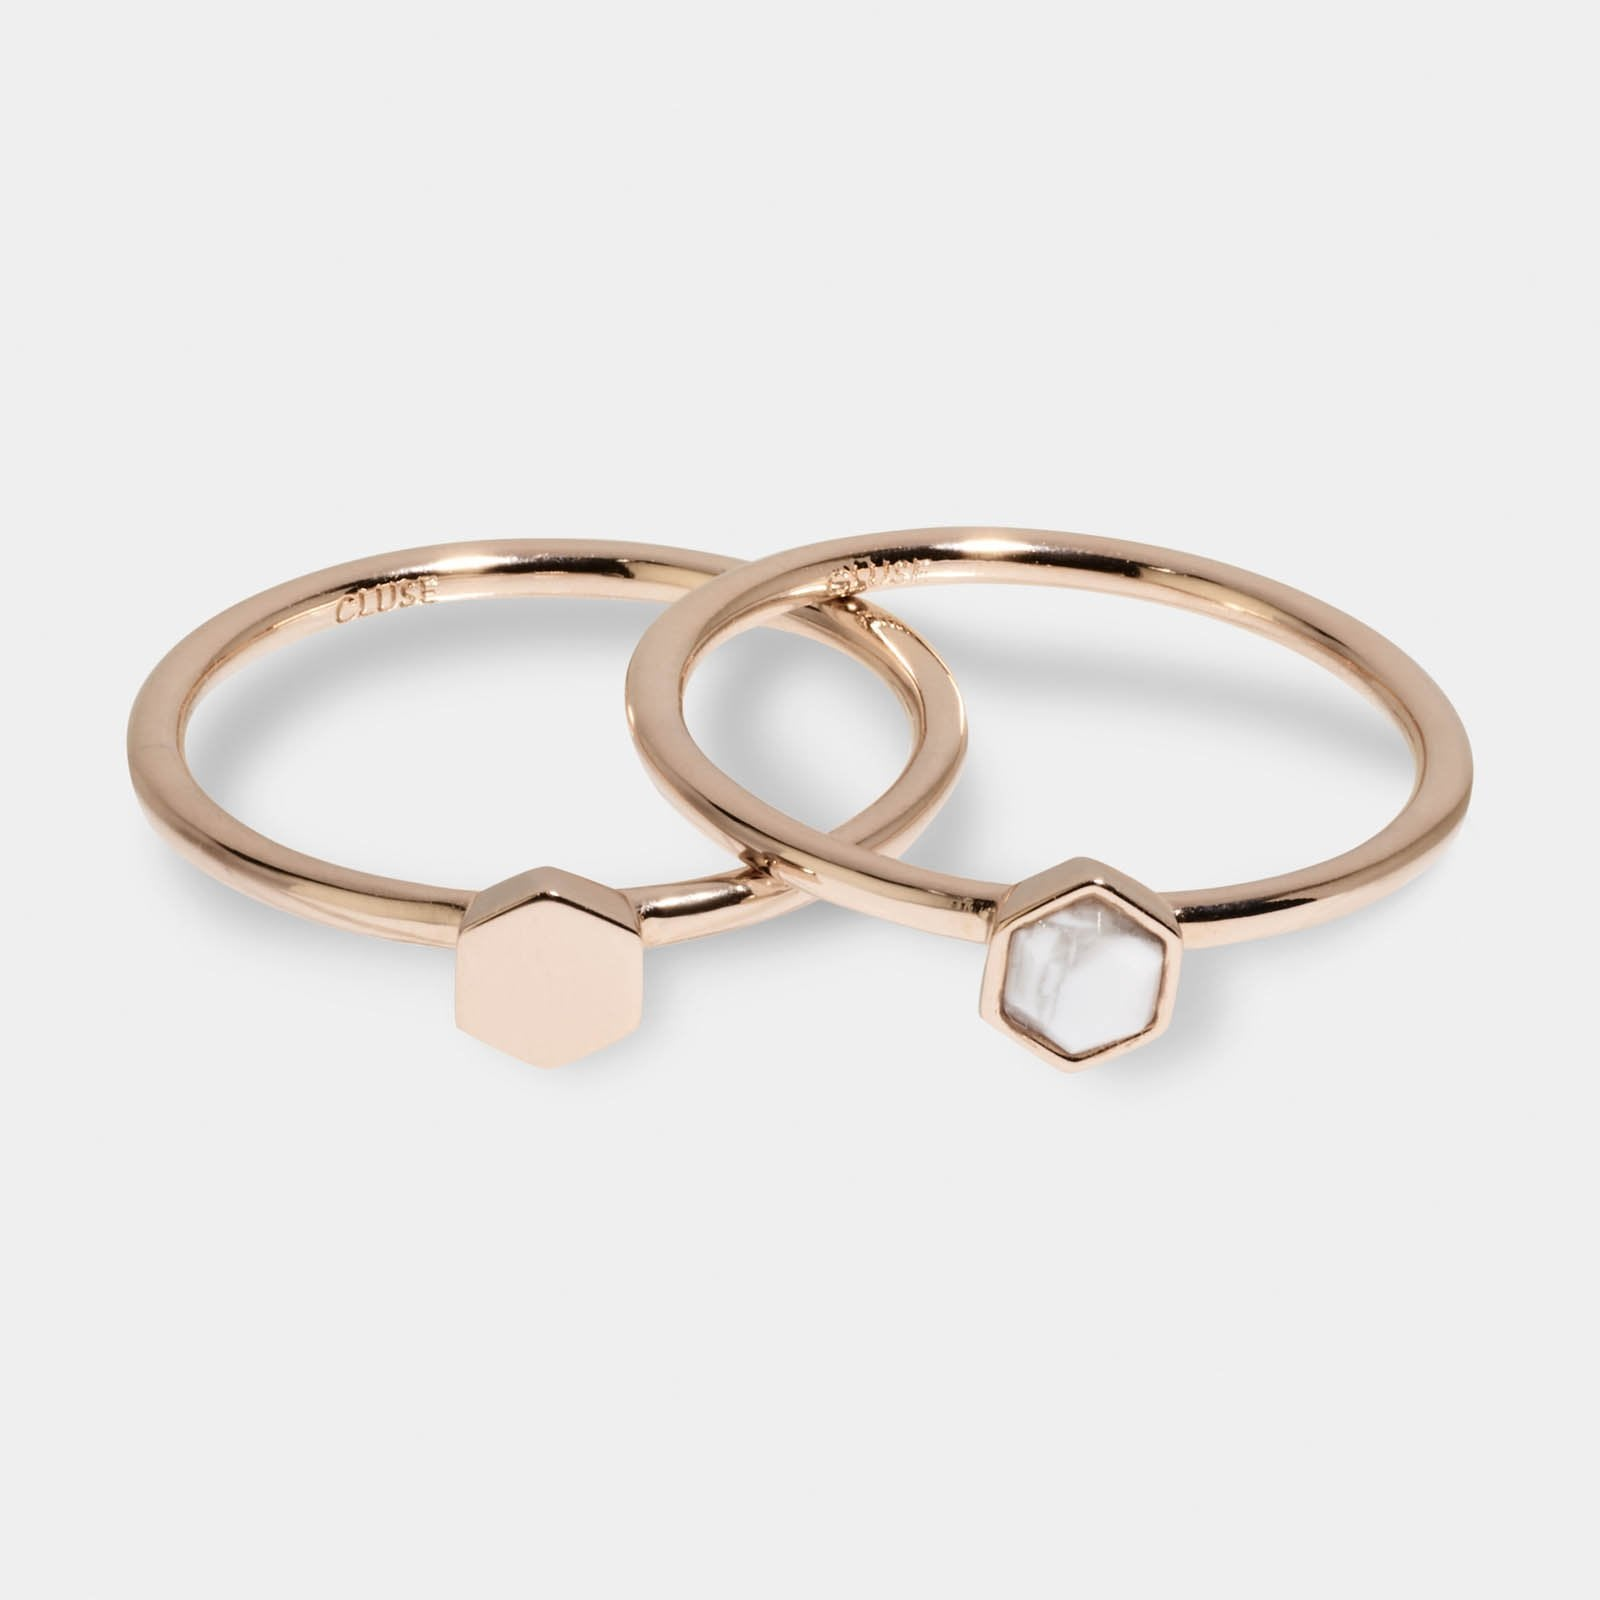 CLUSE Idylle Rose Gold Solid And Marble Hexagon Ring Set-52 CLJ40001-52 - Set di anelli taglia 52